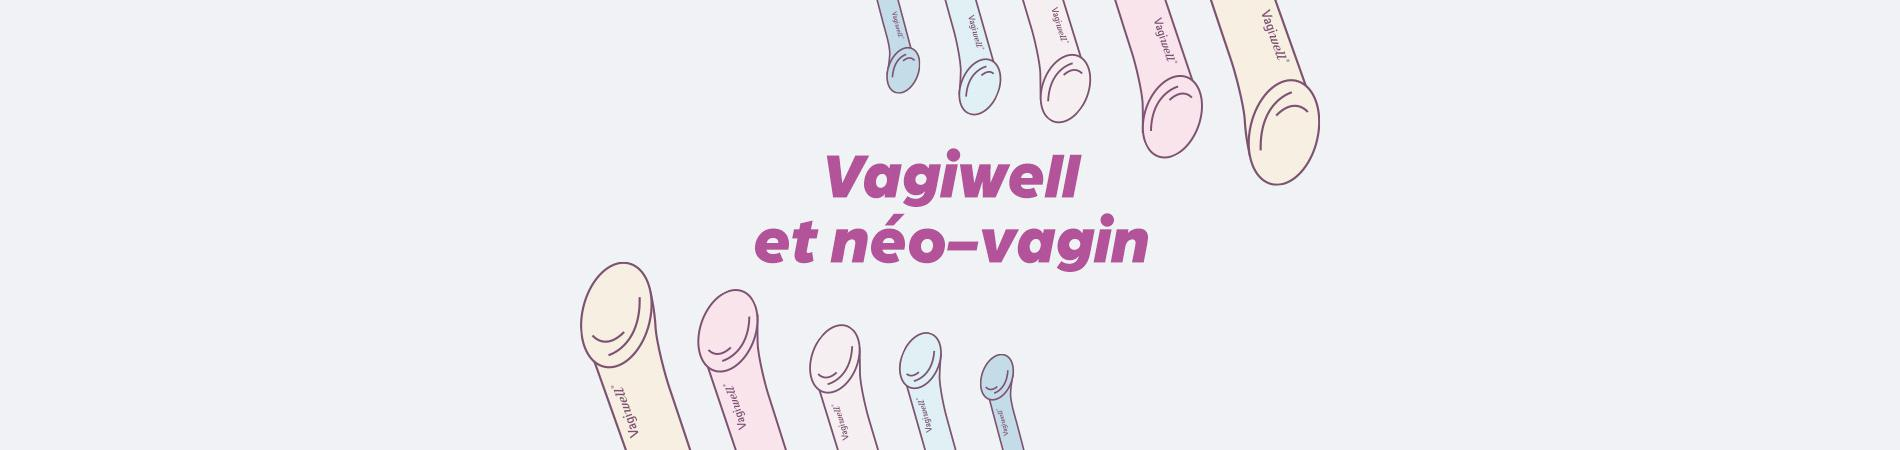 Neovagin et Vagiwell